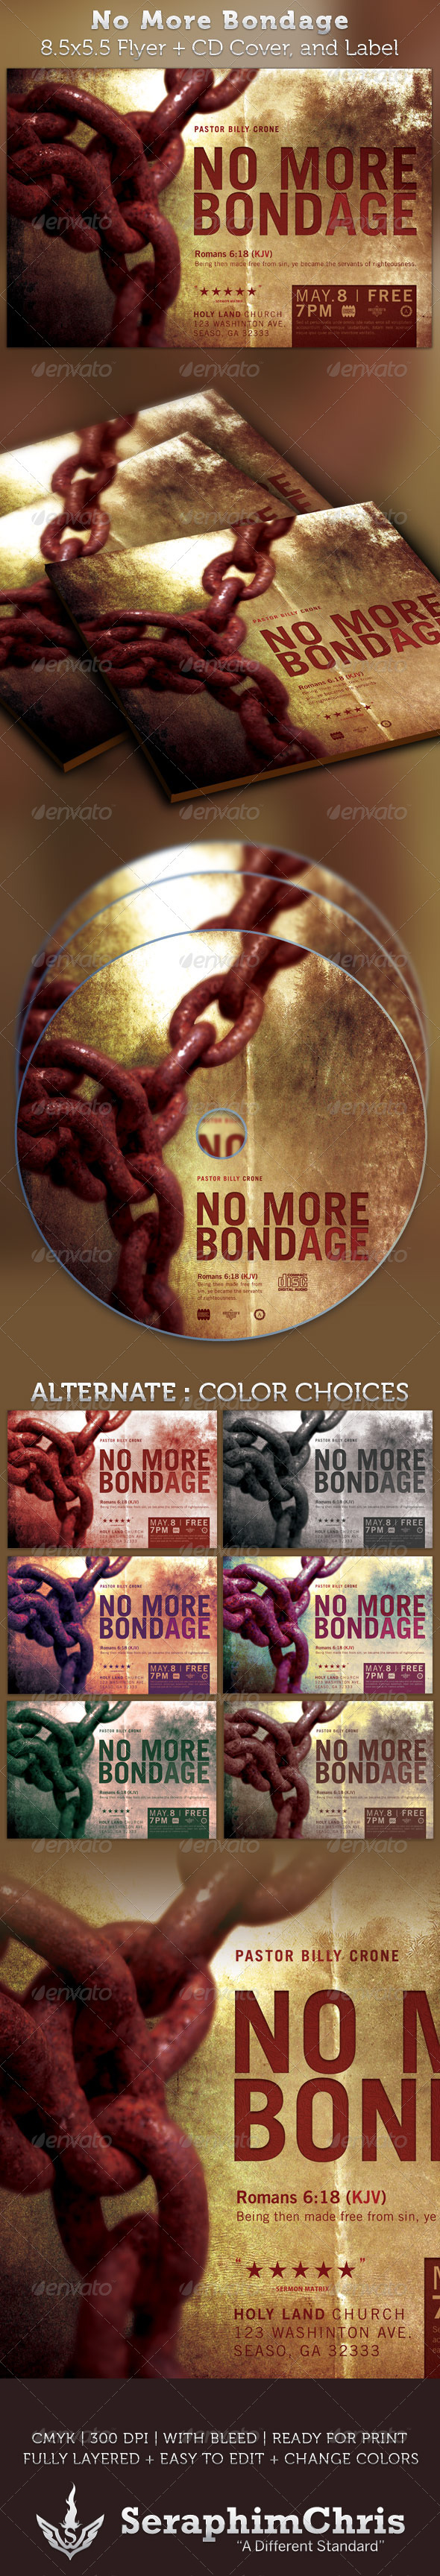 No More Bondage Half Page Flyer and CD Cover - Church Flyers